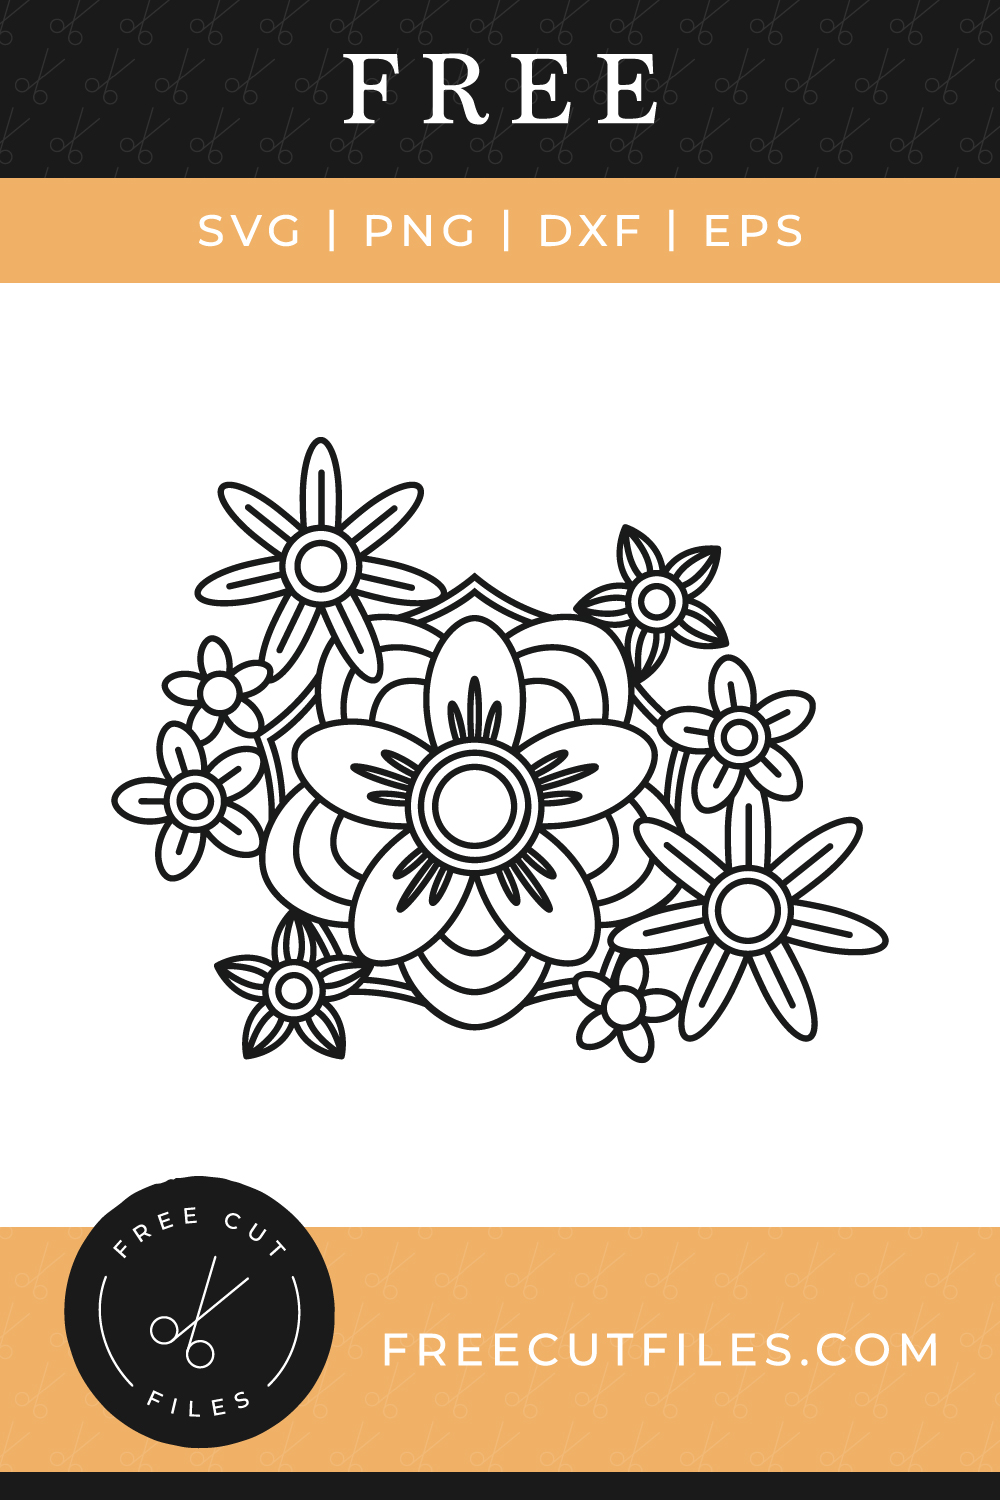 Free Outline Flowers SVG